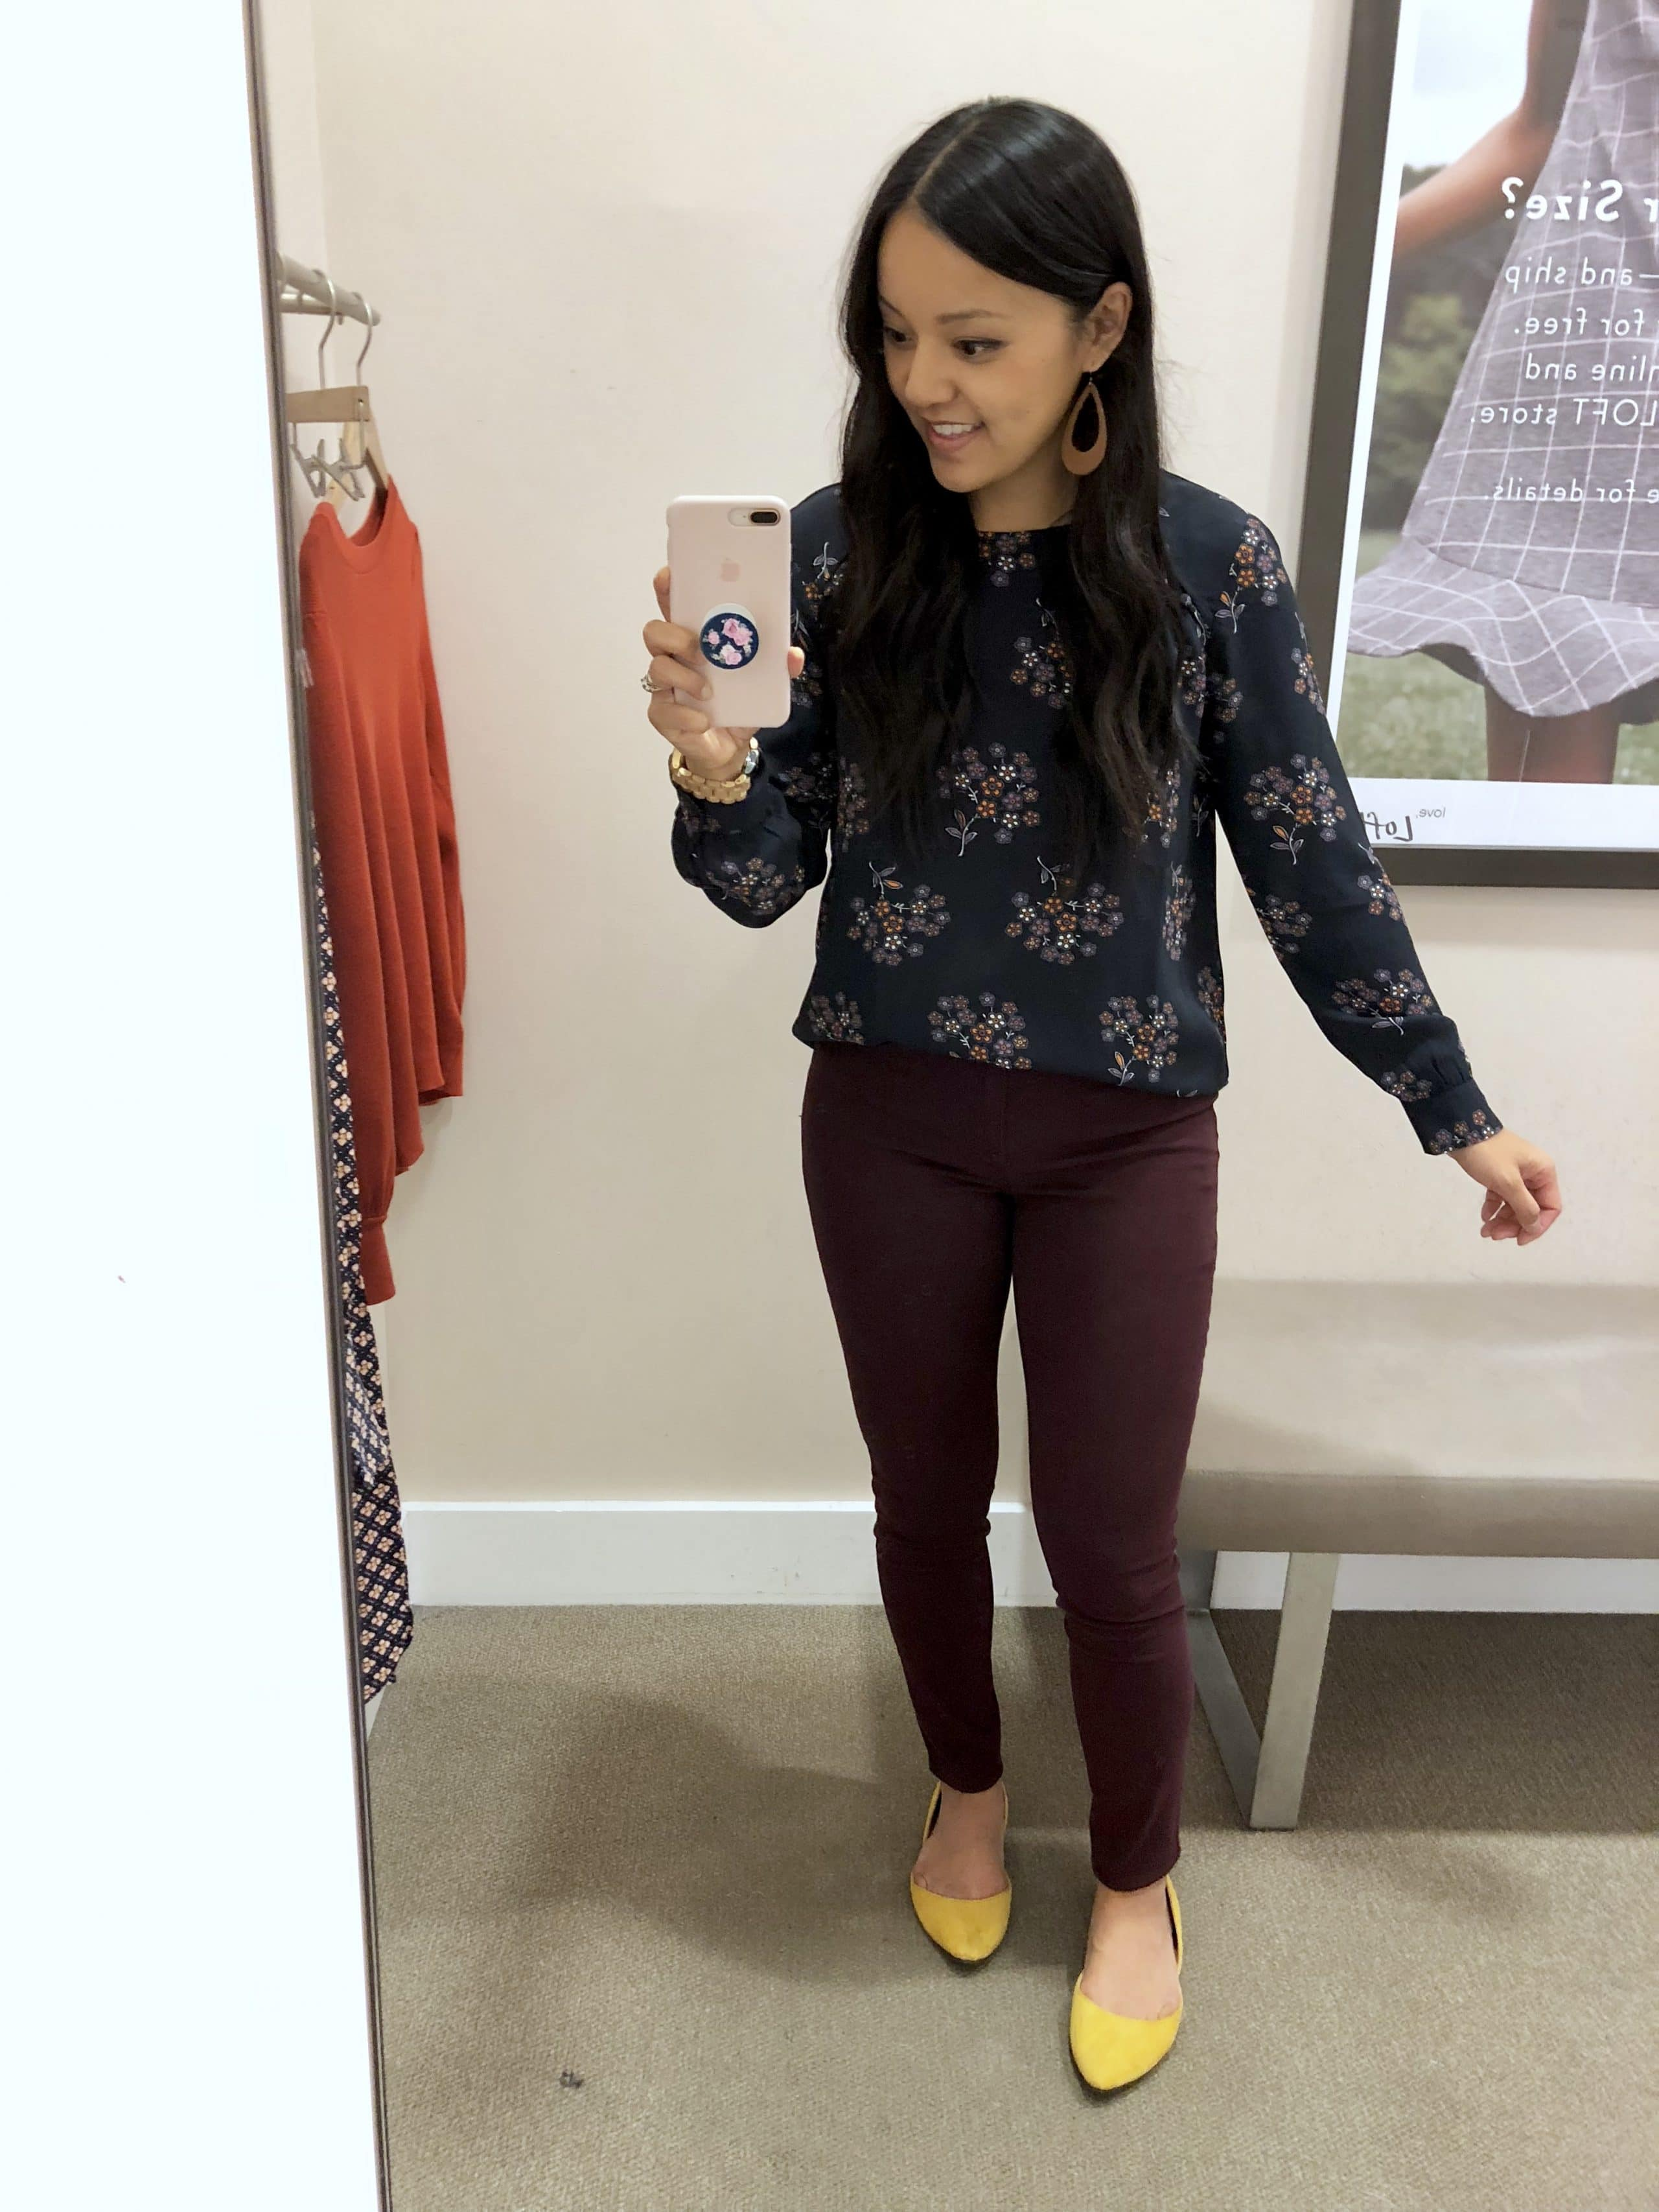 Floral Navy Blouse + Maroon Skinnies + Yellow Flats + Earrings